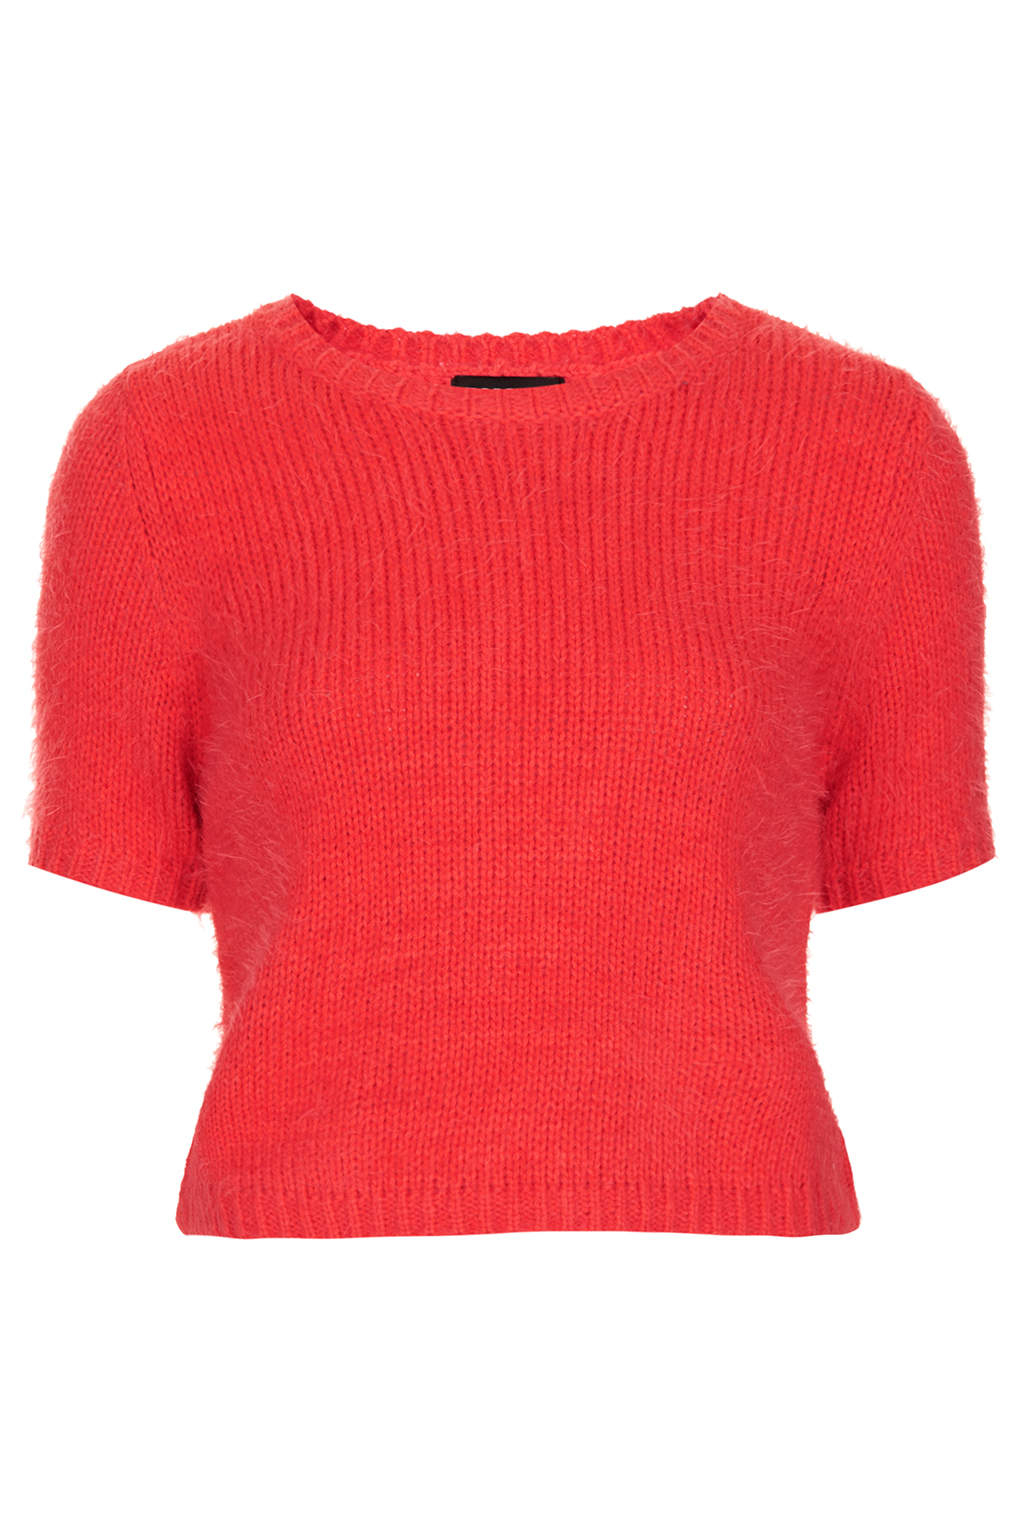 Lord And Taylor Cashmere Sweaters